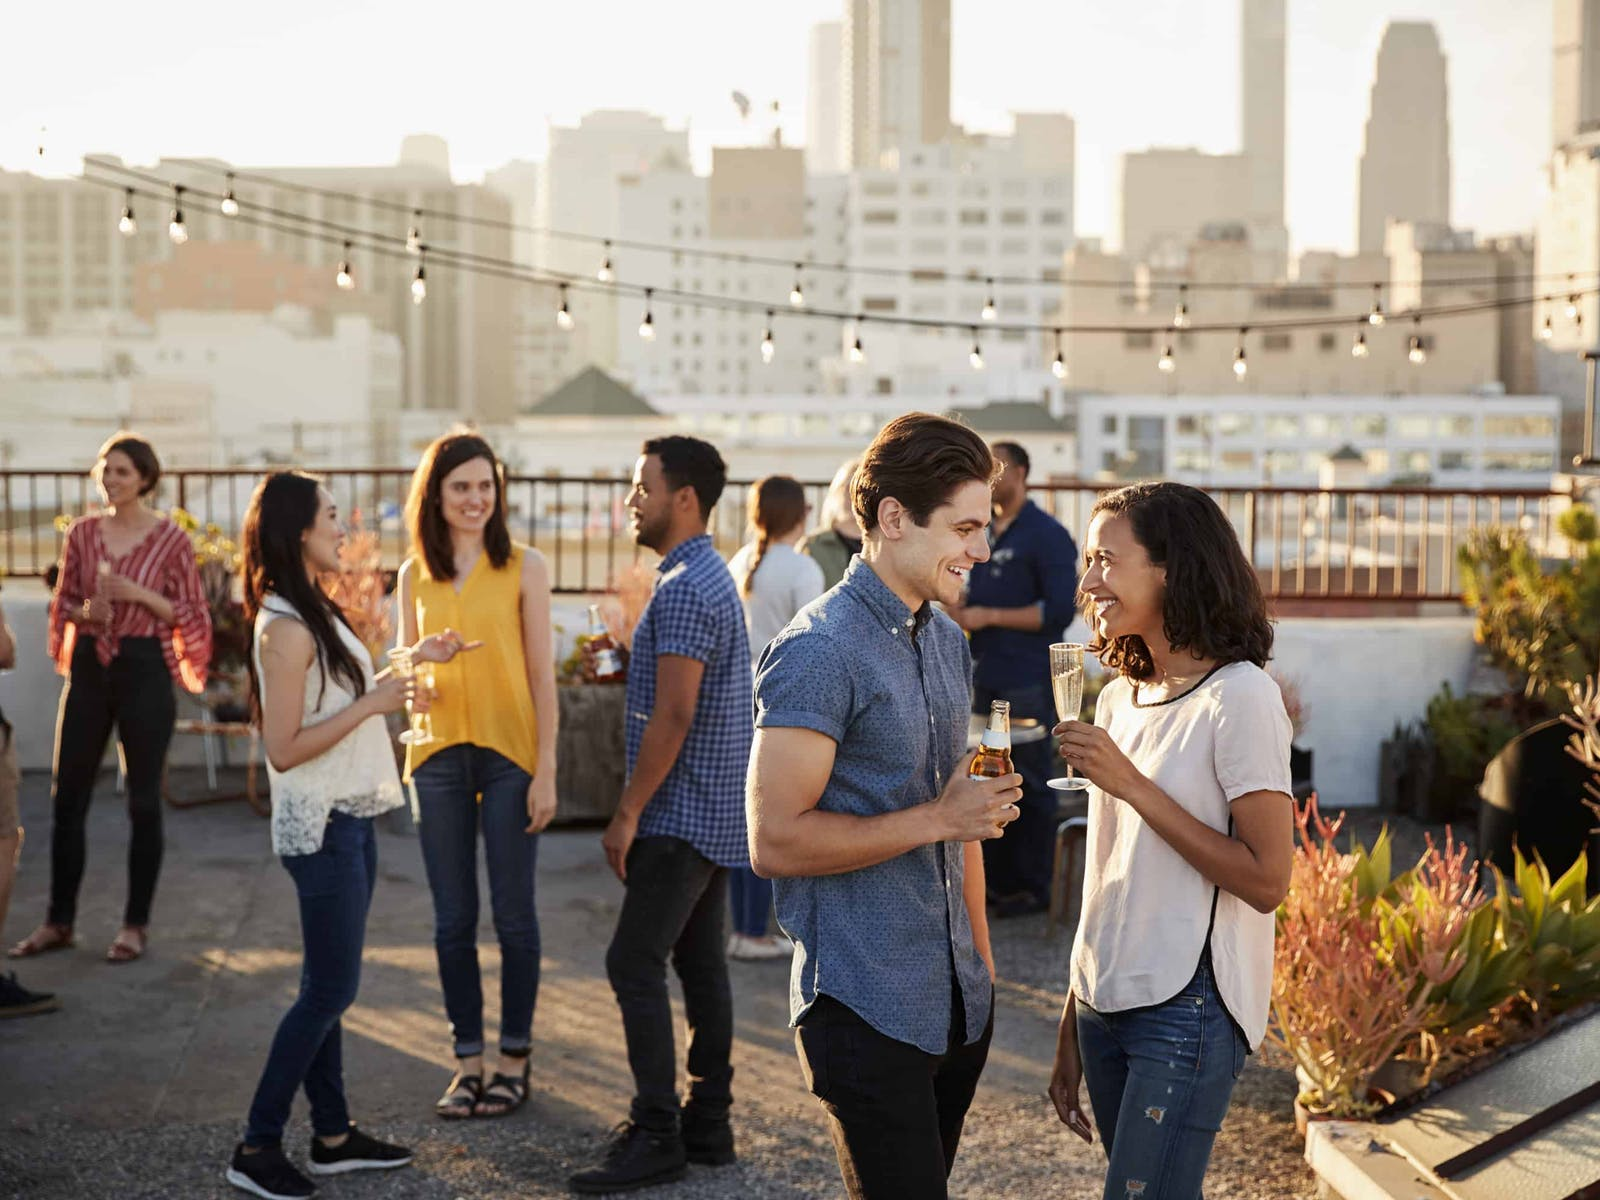 a group of people enjoying drinks on a rooftop